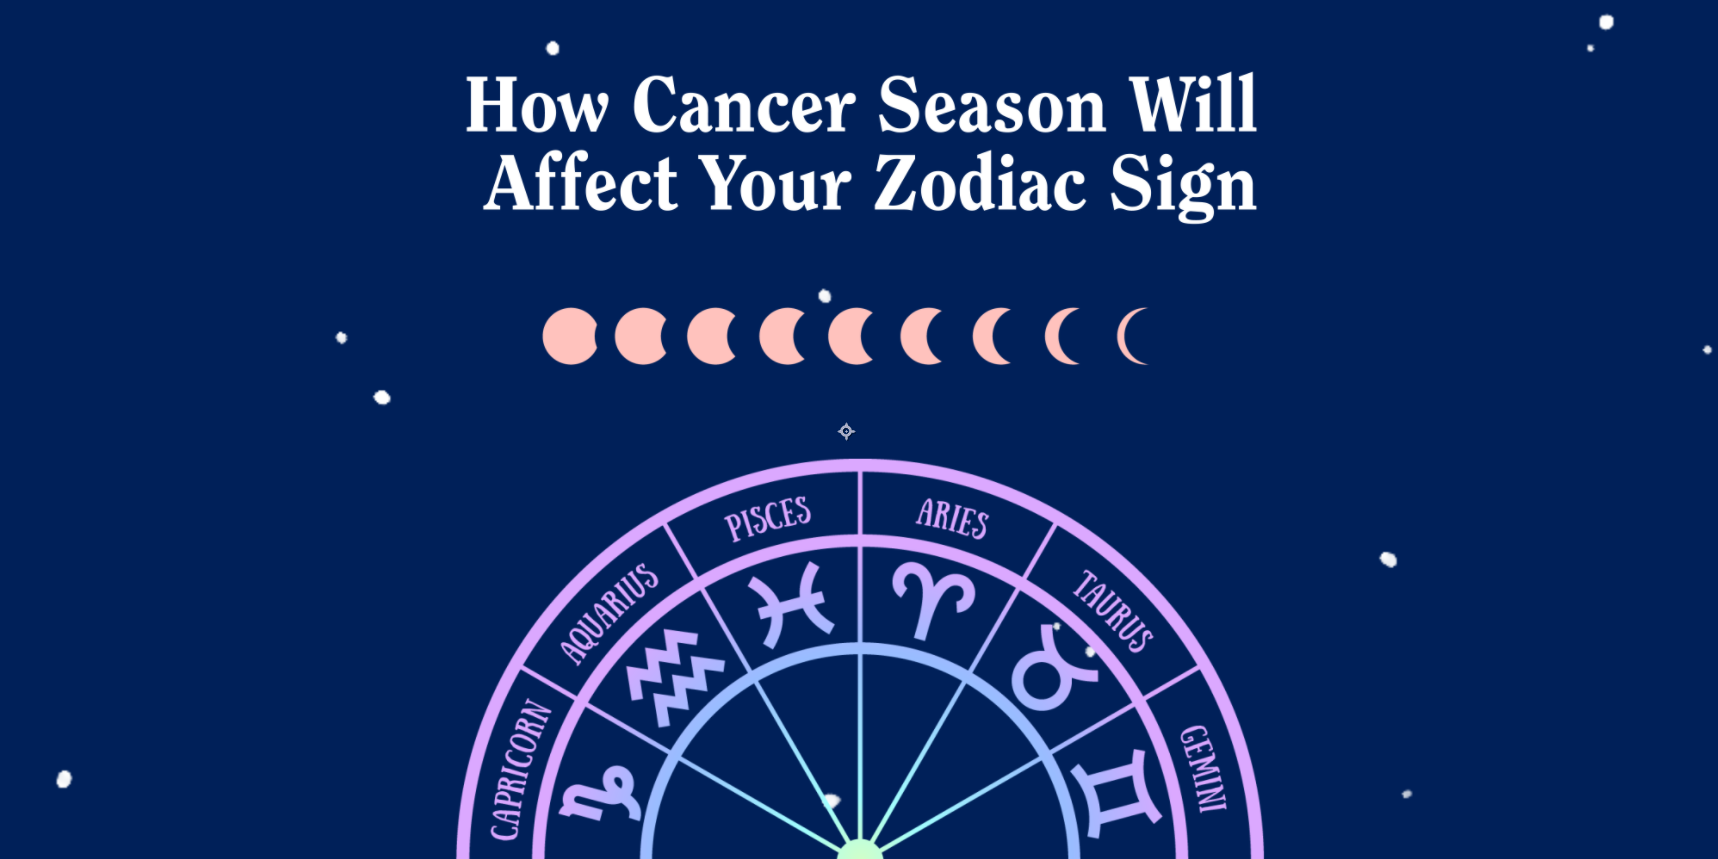 Cancer Season Is Here - Here's How Each Zodiac Sign Will Be Affected